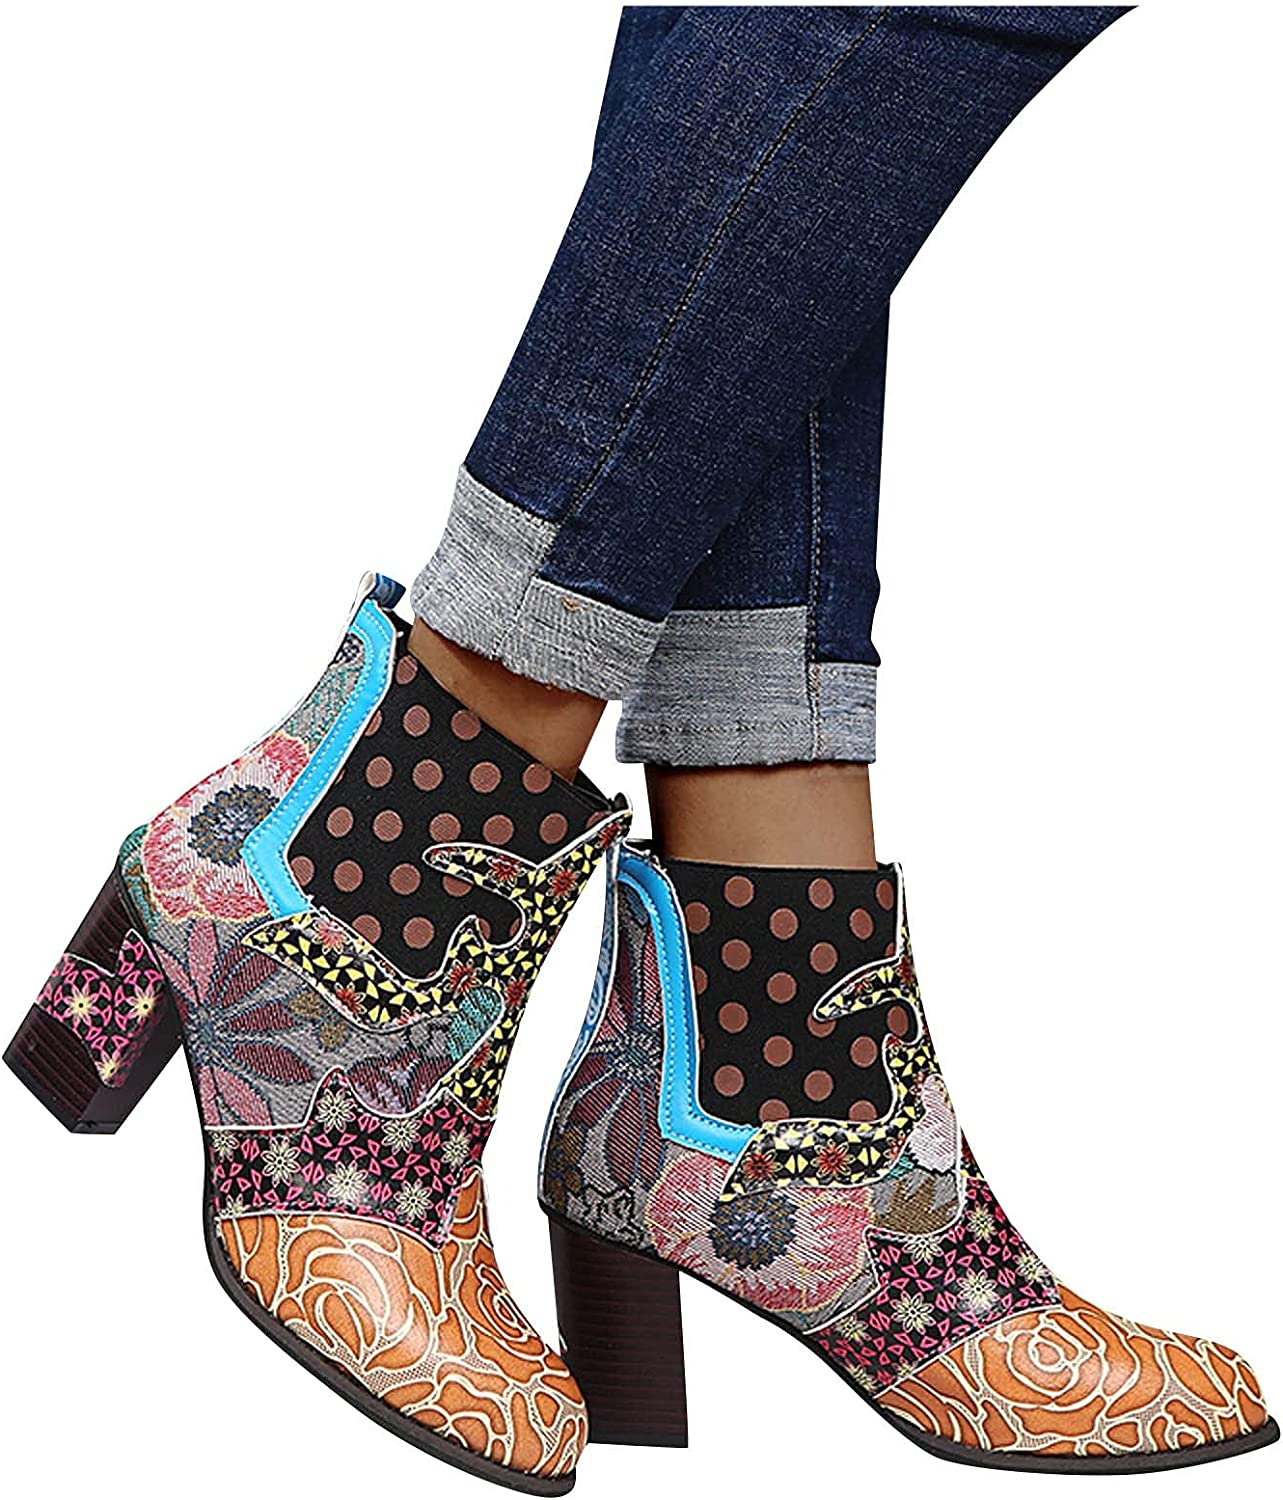 Boots for Women Platform Boots, Vintage Zipper Ankle Booties Western Boots Chunky High Heel Combat Boots Motorcycle Boots